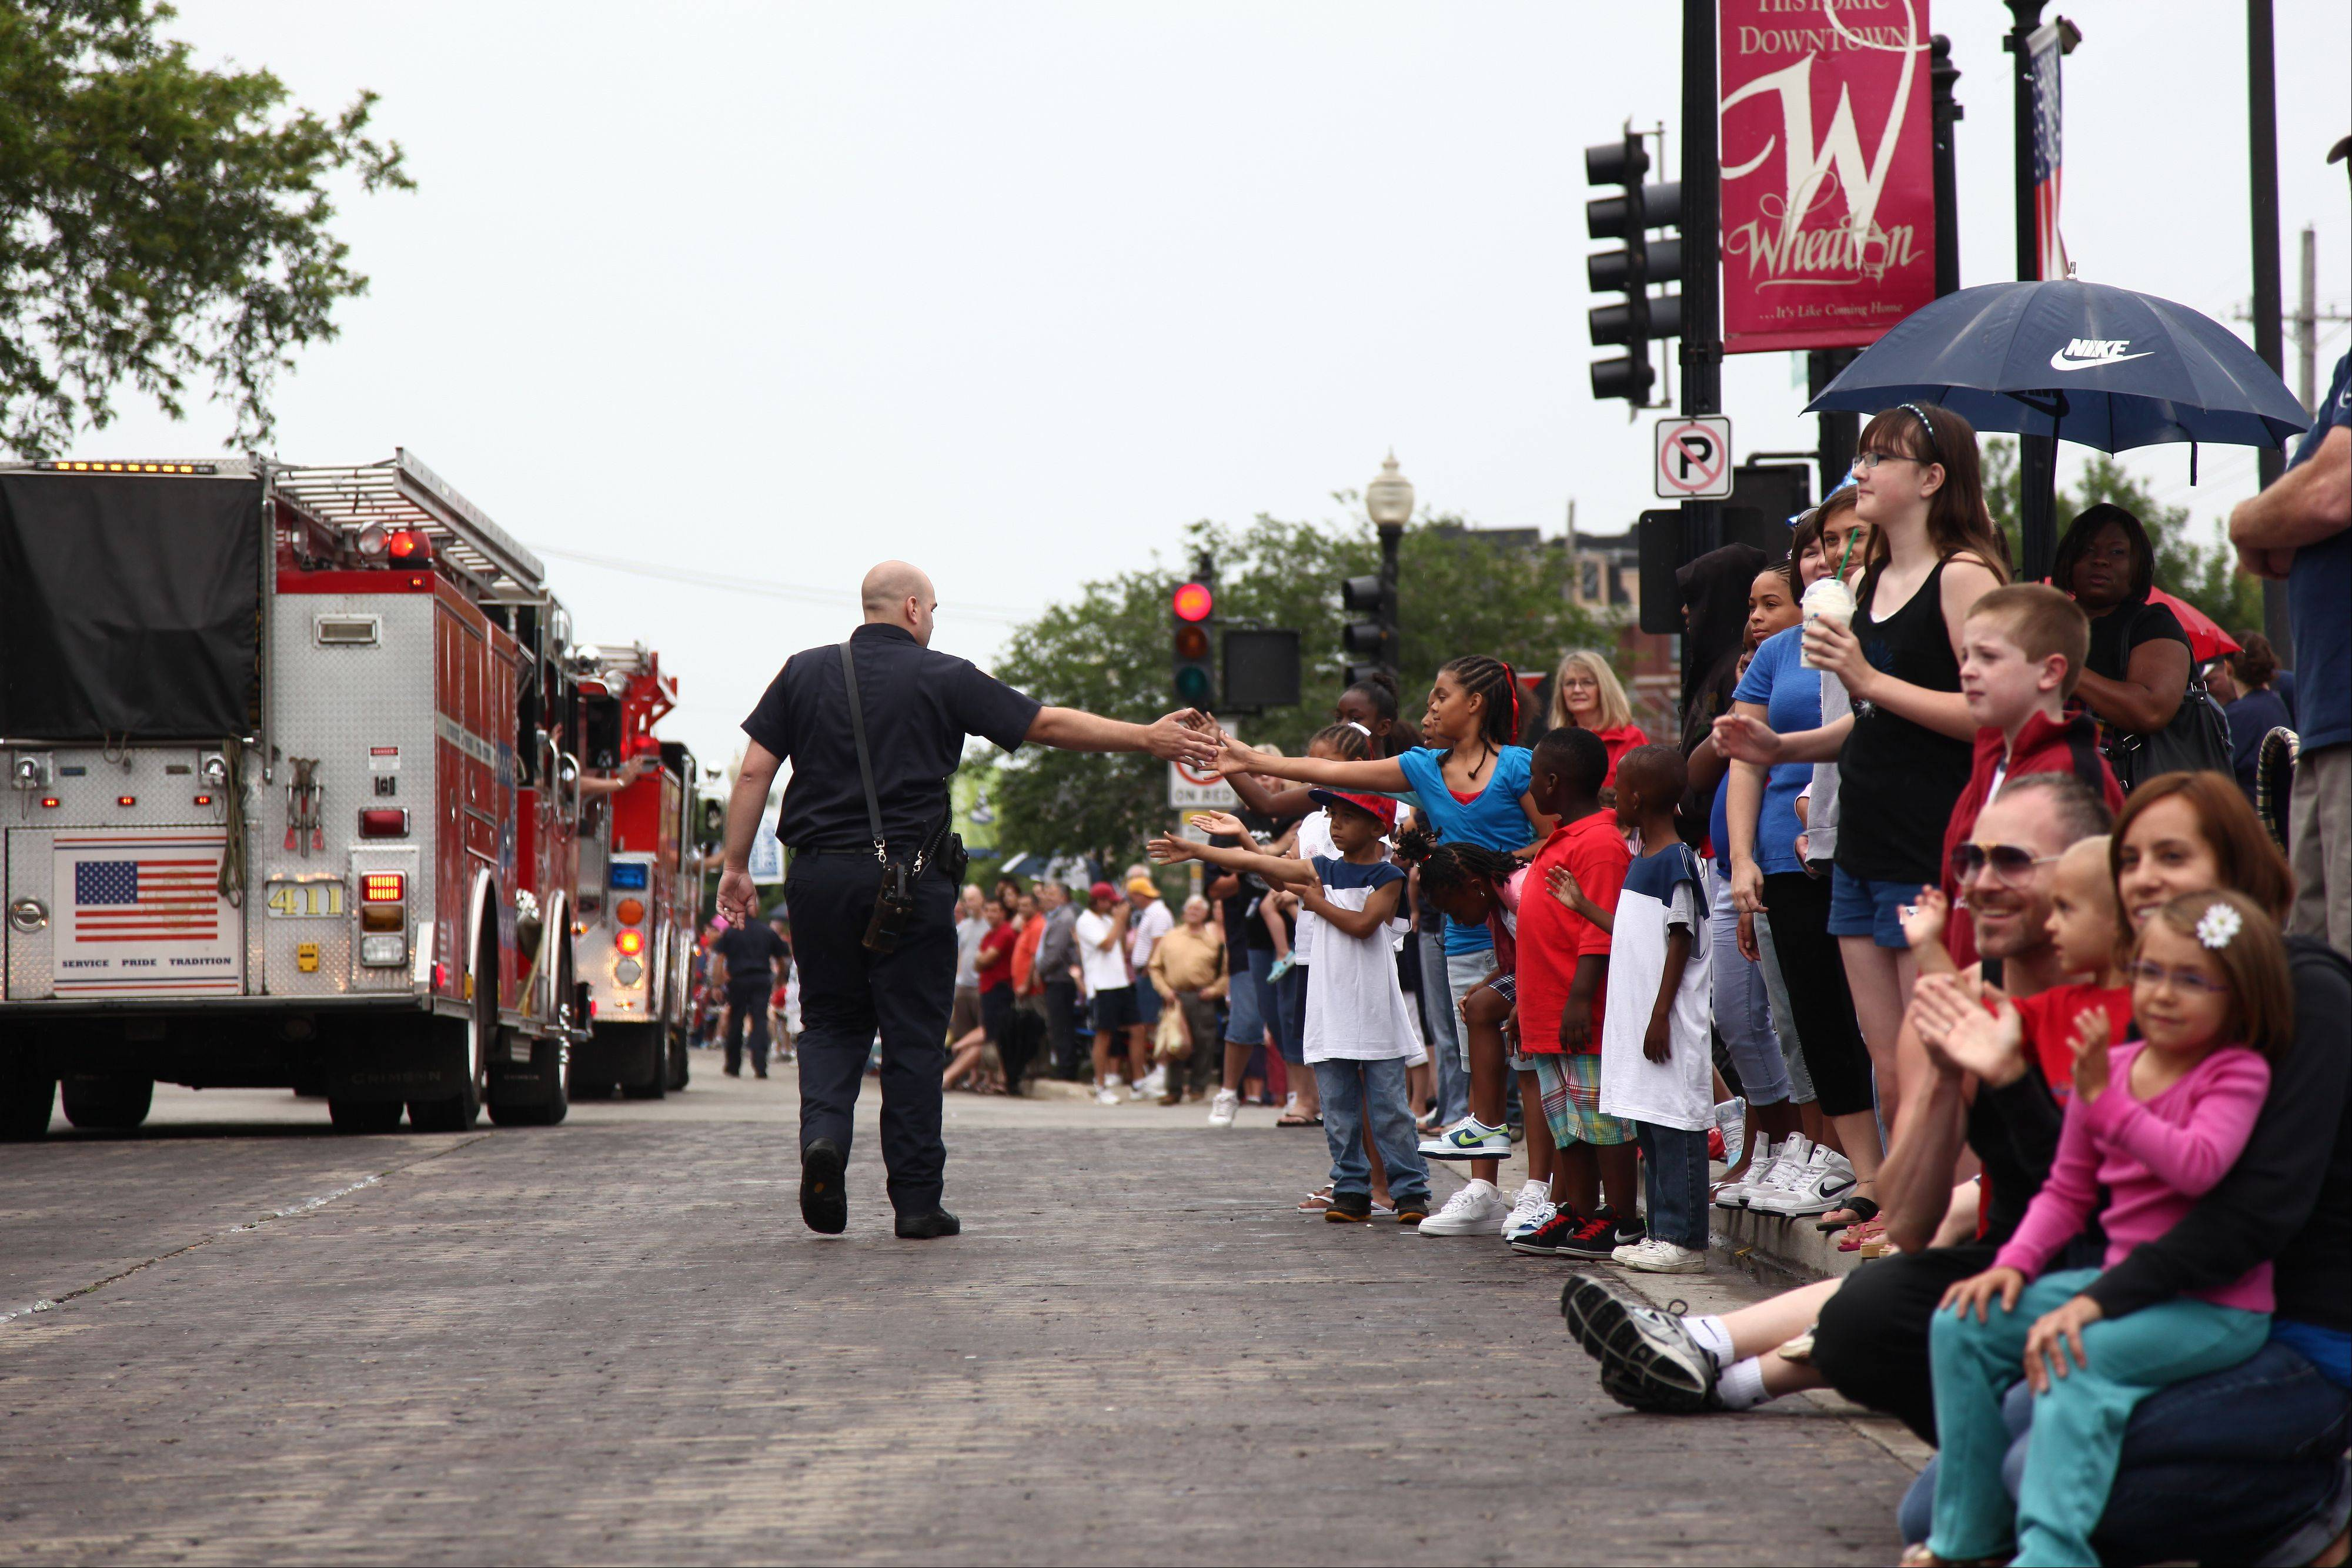 A decision hasn't been made whether another parade will be held now that Wheaton's Fourth of July celebration has been canceled. On Tuesday, Carol Stream also canceled its parade and fireworks display.